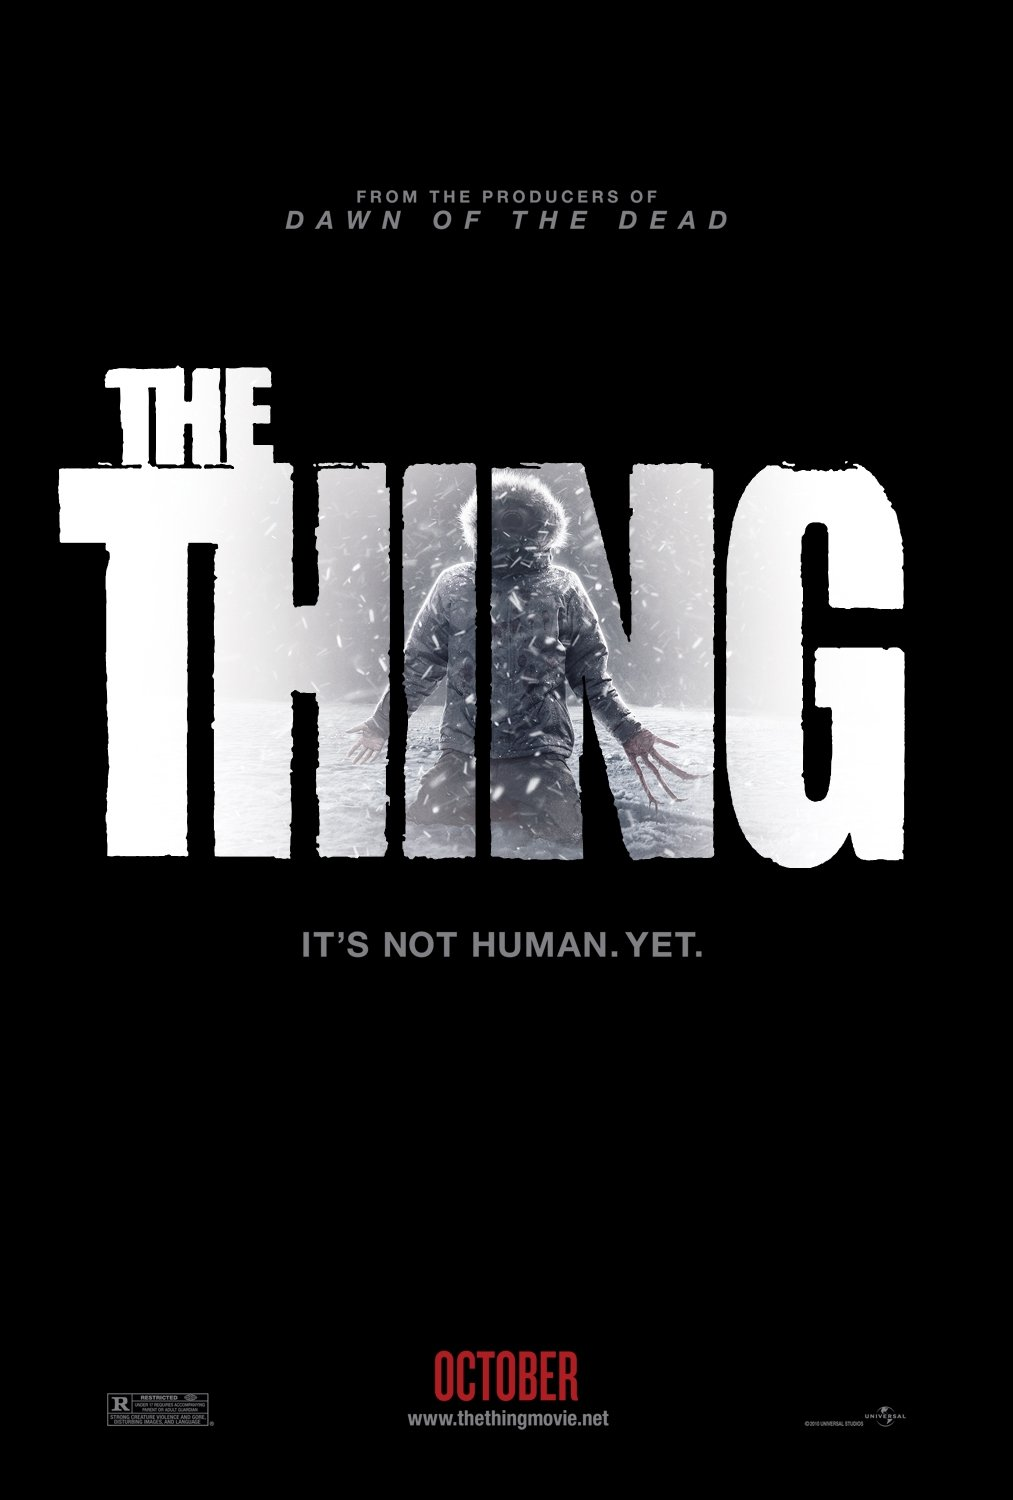 http://4.bp.blogspot.com/-fYANeOn-biA/TmpD85mEqlI/AAAAAAAAB9M/vHZfshNCghU/s1600/the-thing-movie-2011-poster-1.jpg